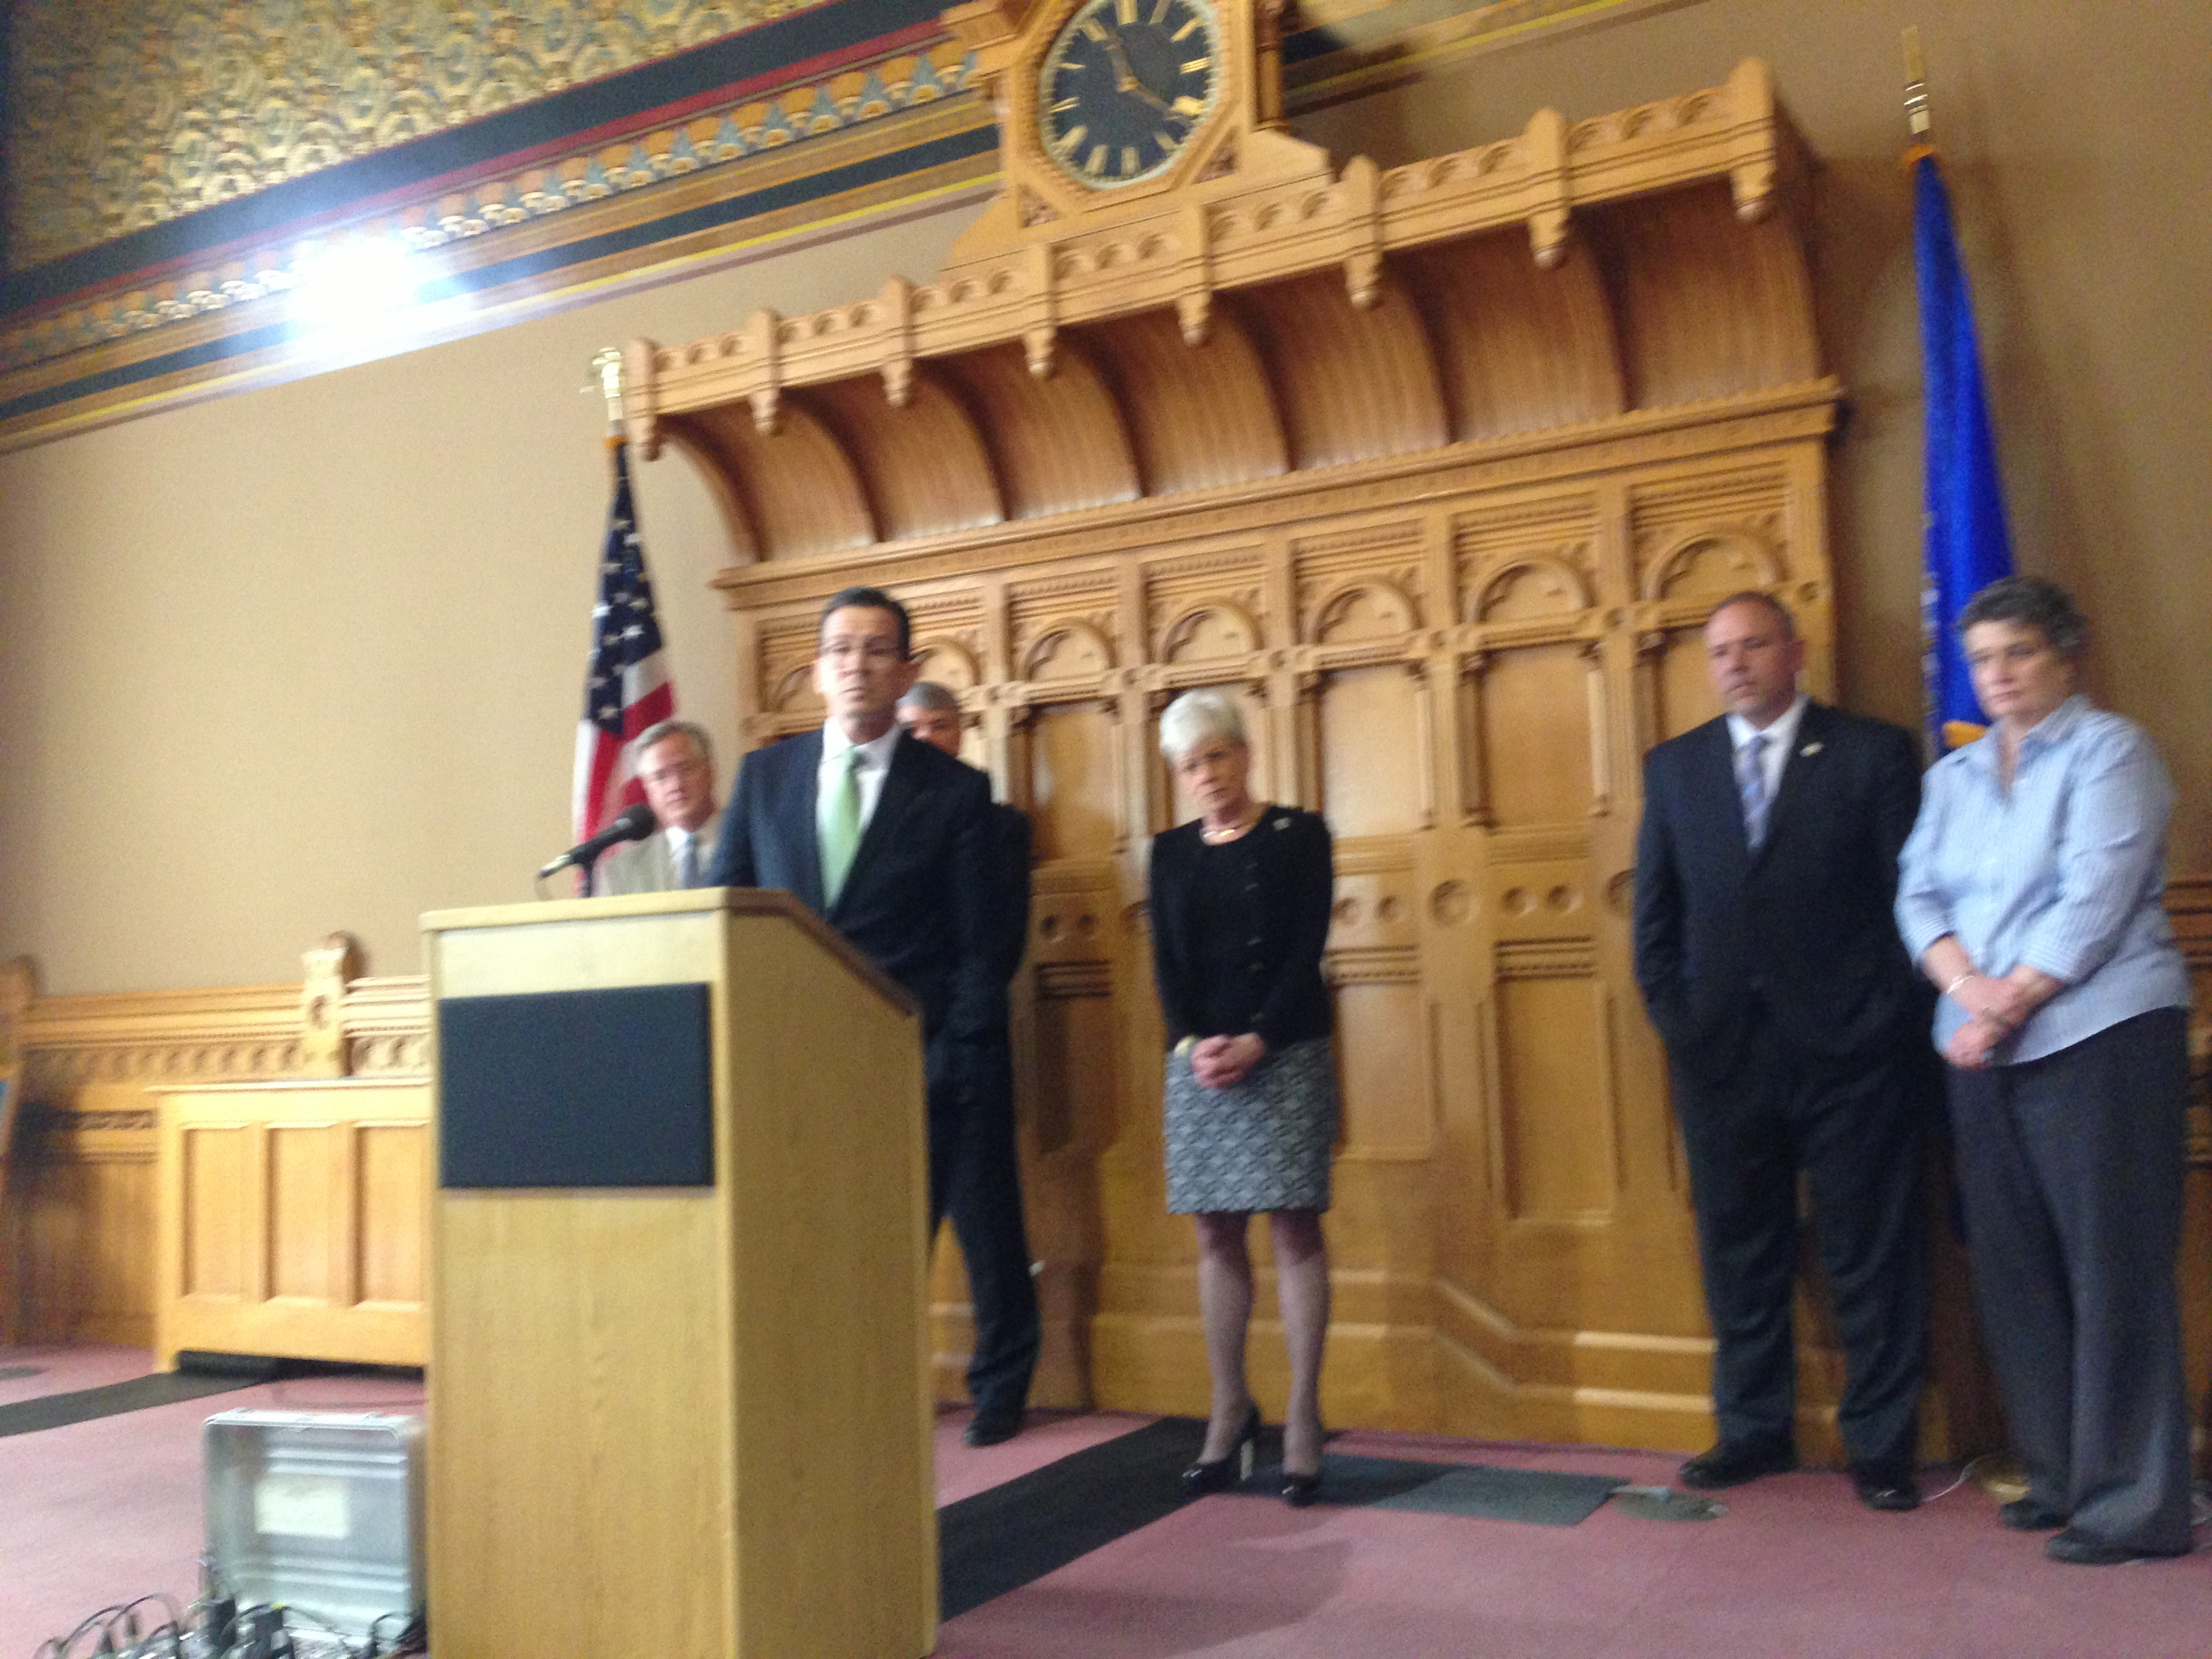 The budget vote is Saturday, but Malloy's focus is November